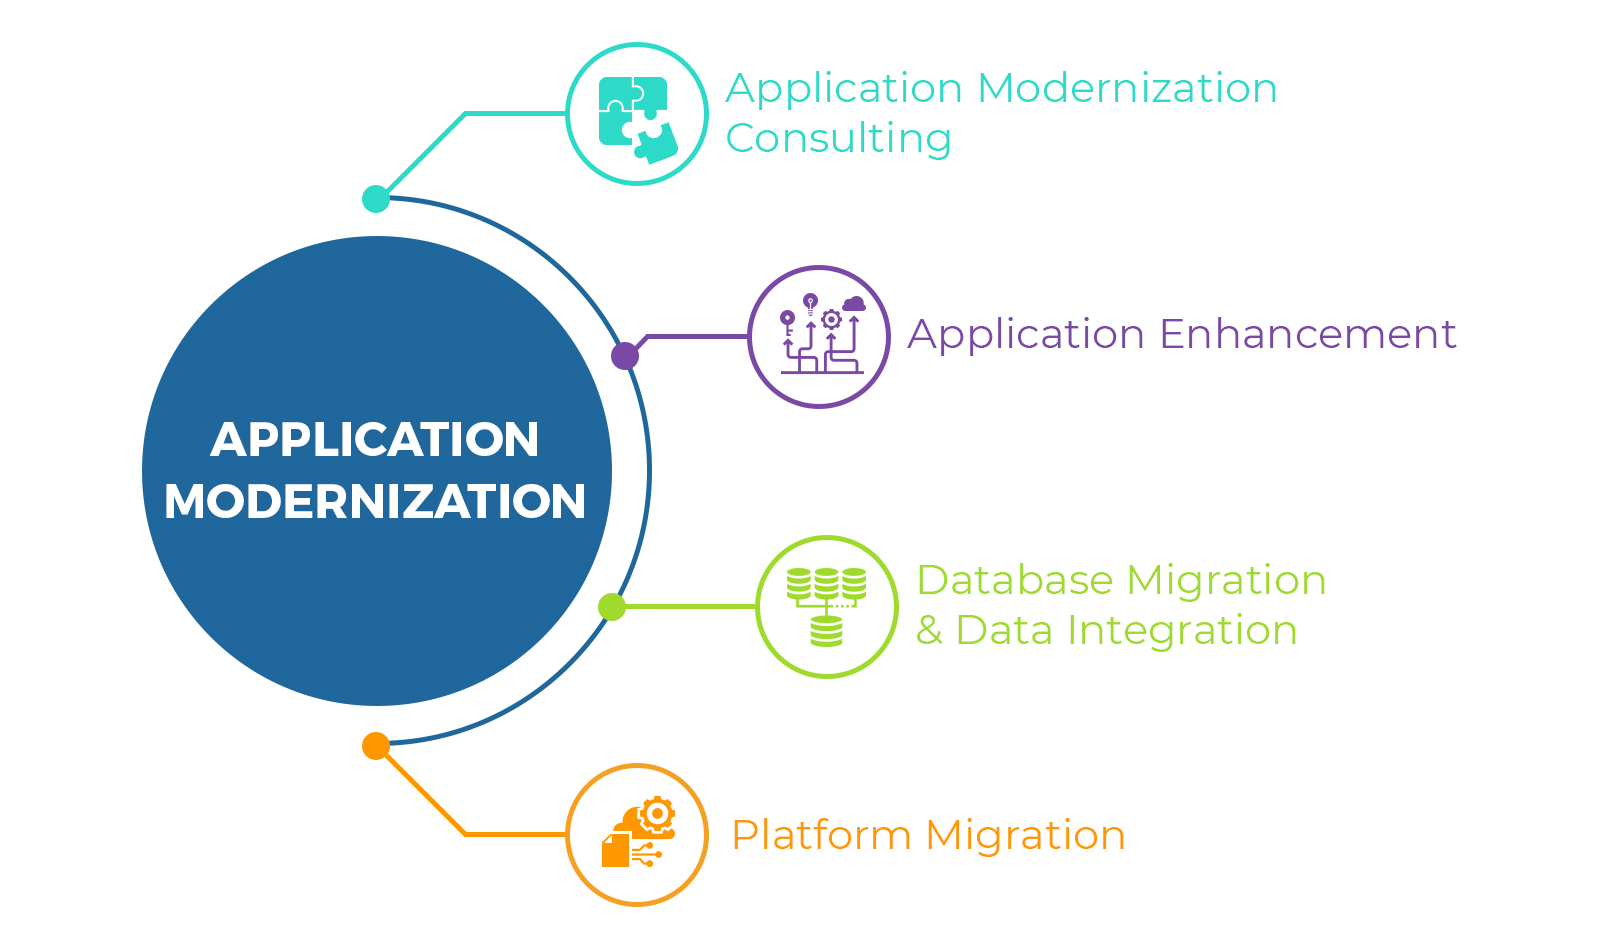 Application-Modernization.jpg